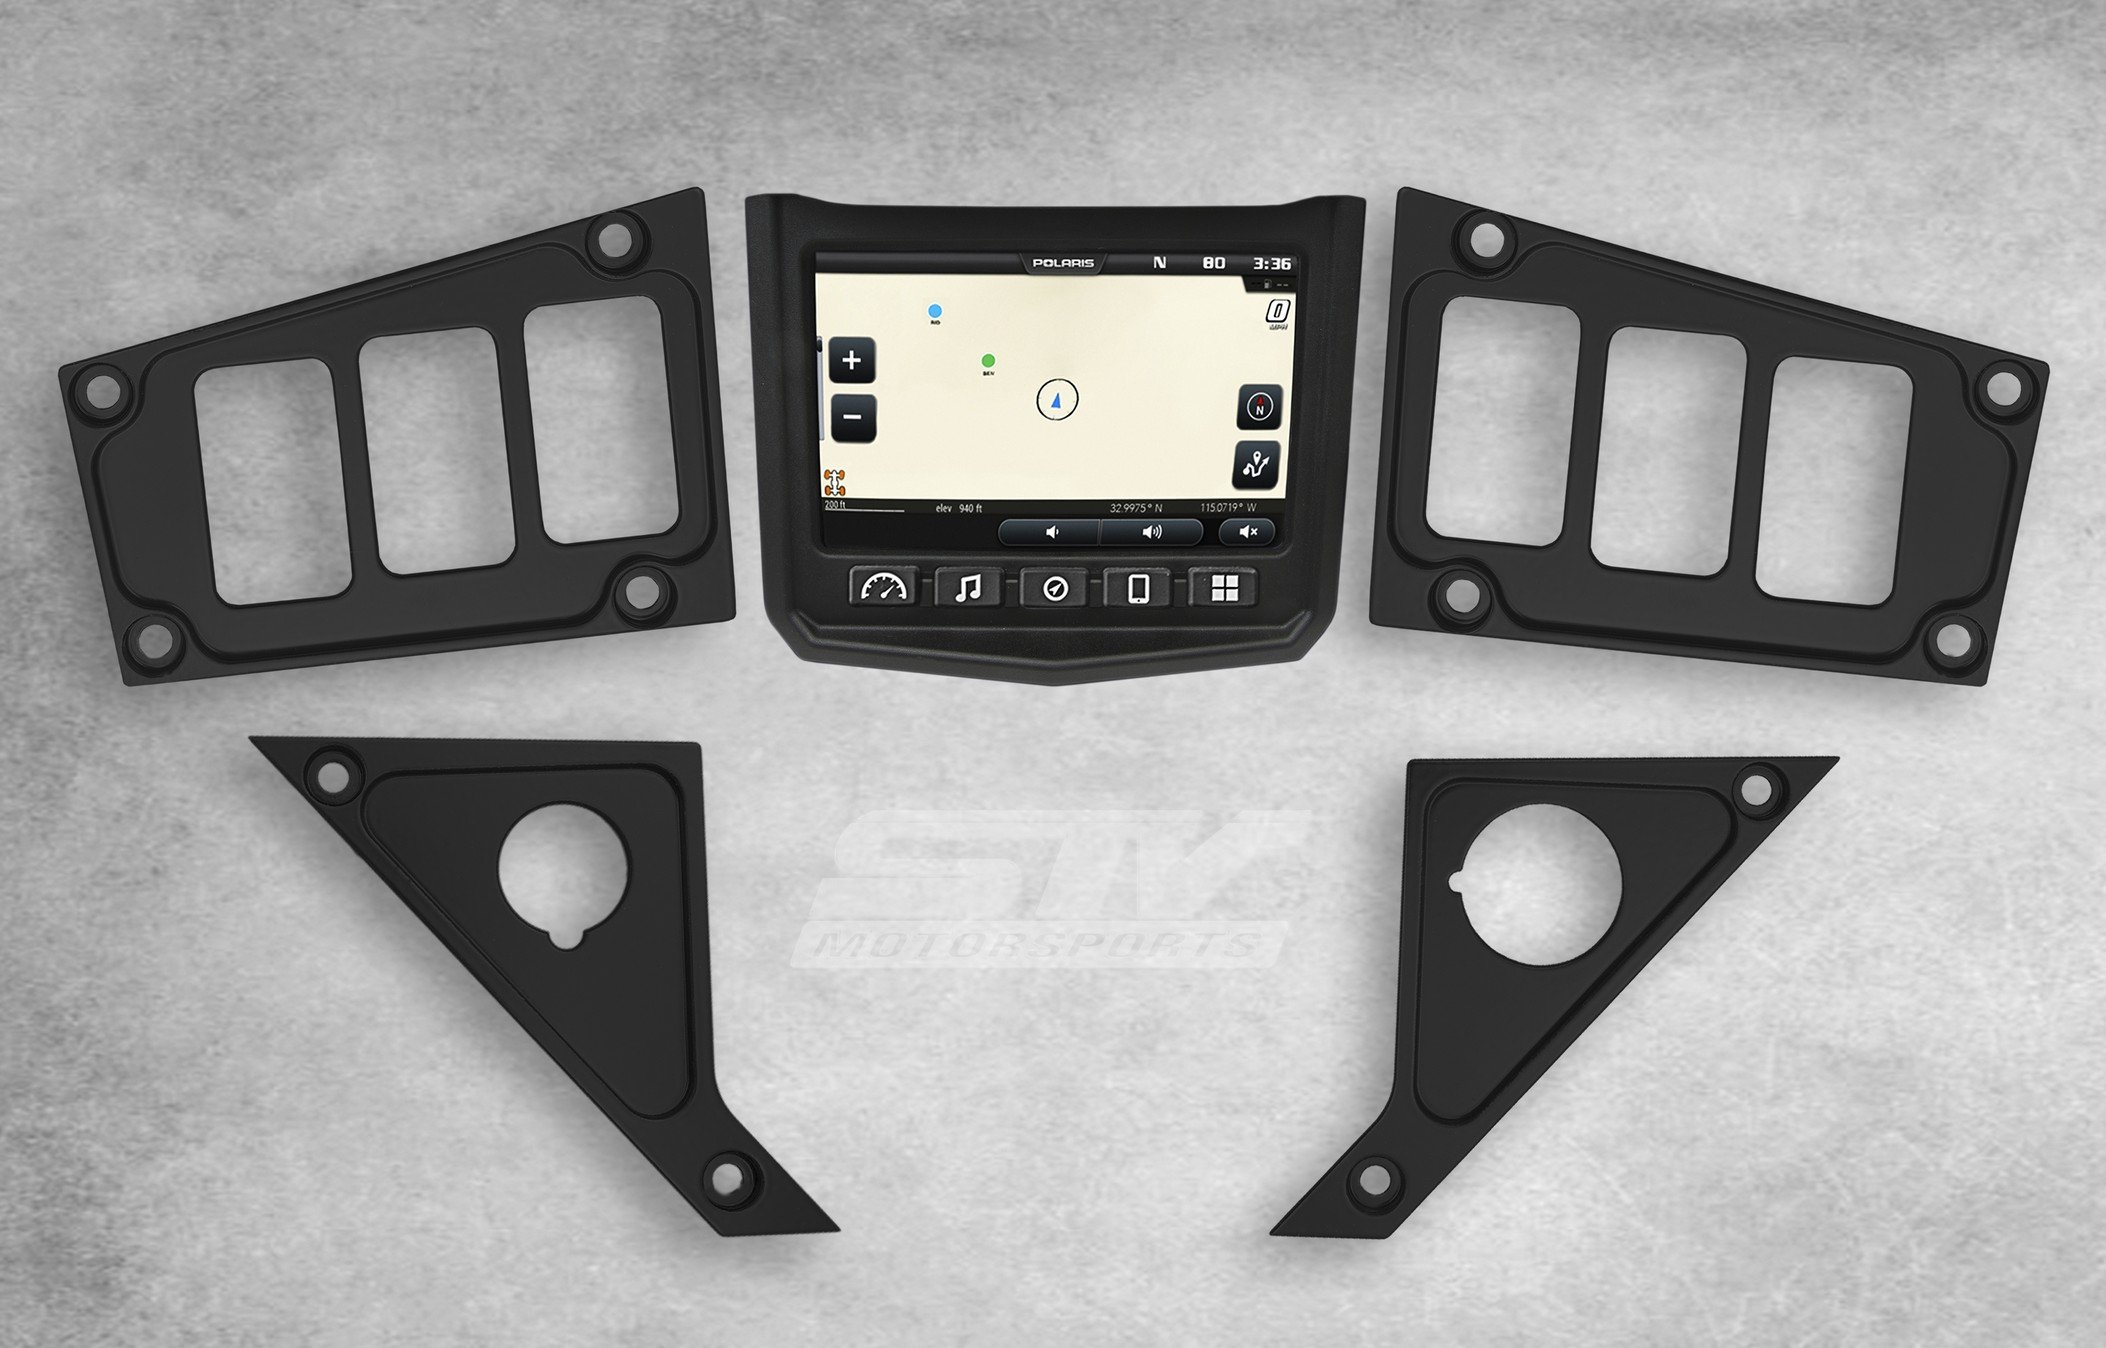 STV Motorsports Custom Black Aluminum Dash Panel for 2017 POLARIS RZR XP 1000 RIDE COMMAND EDITION with 6 switch openings – MADE 100% in USA